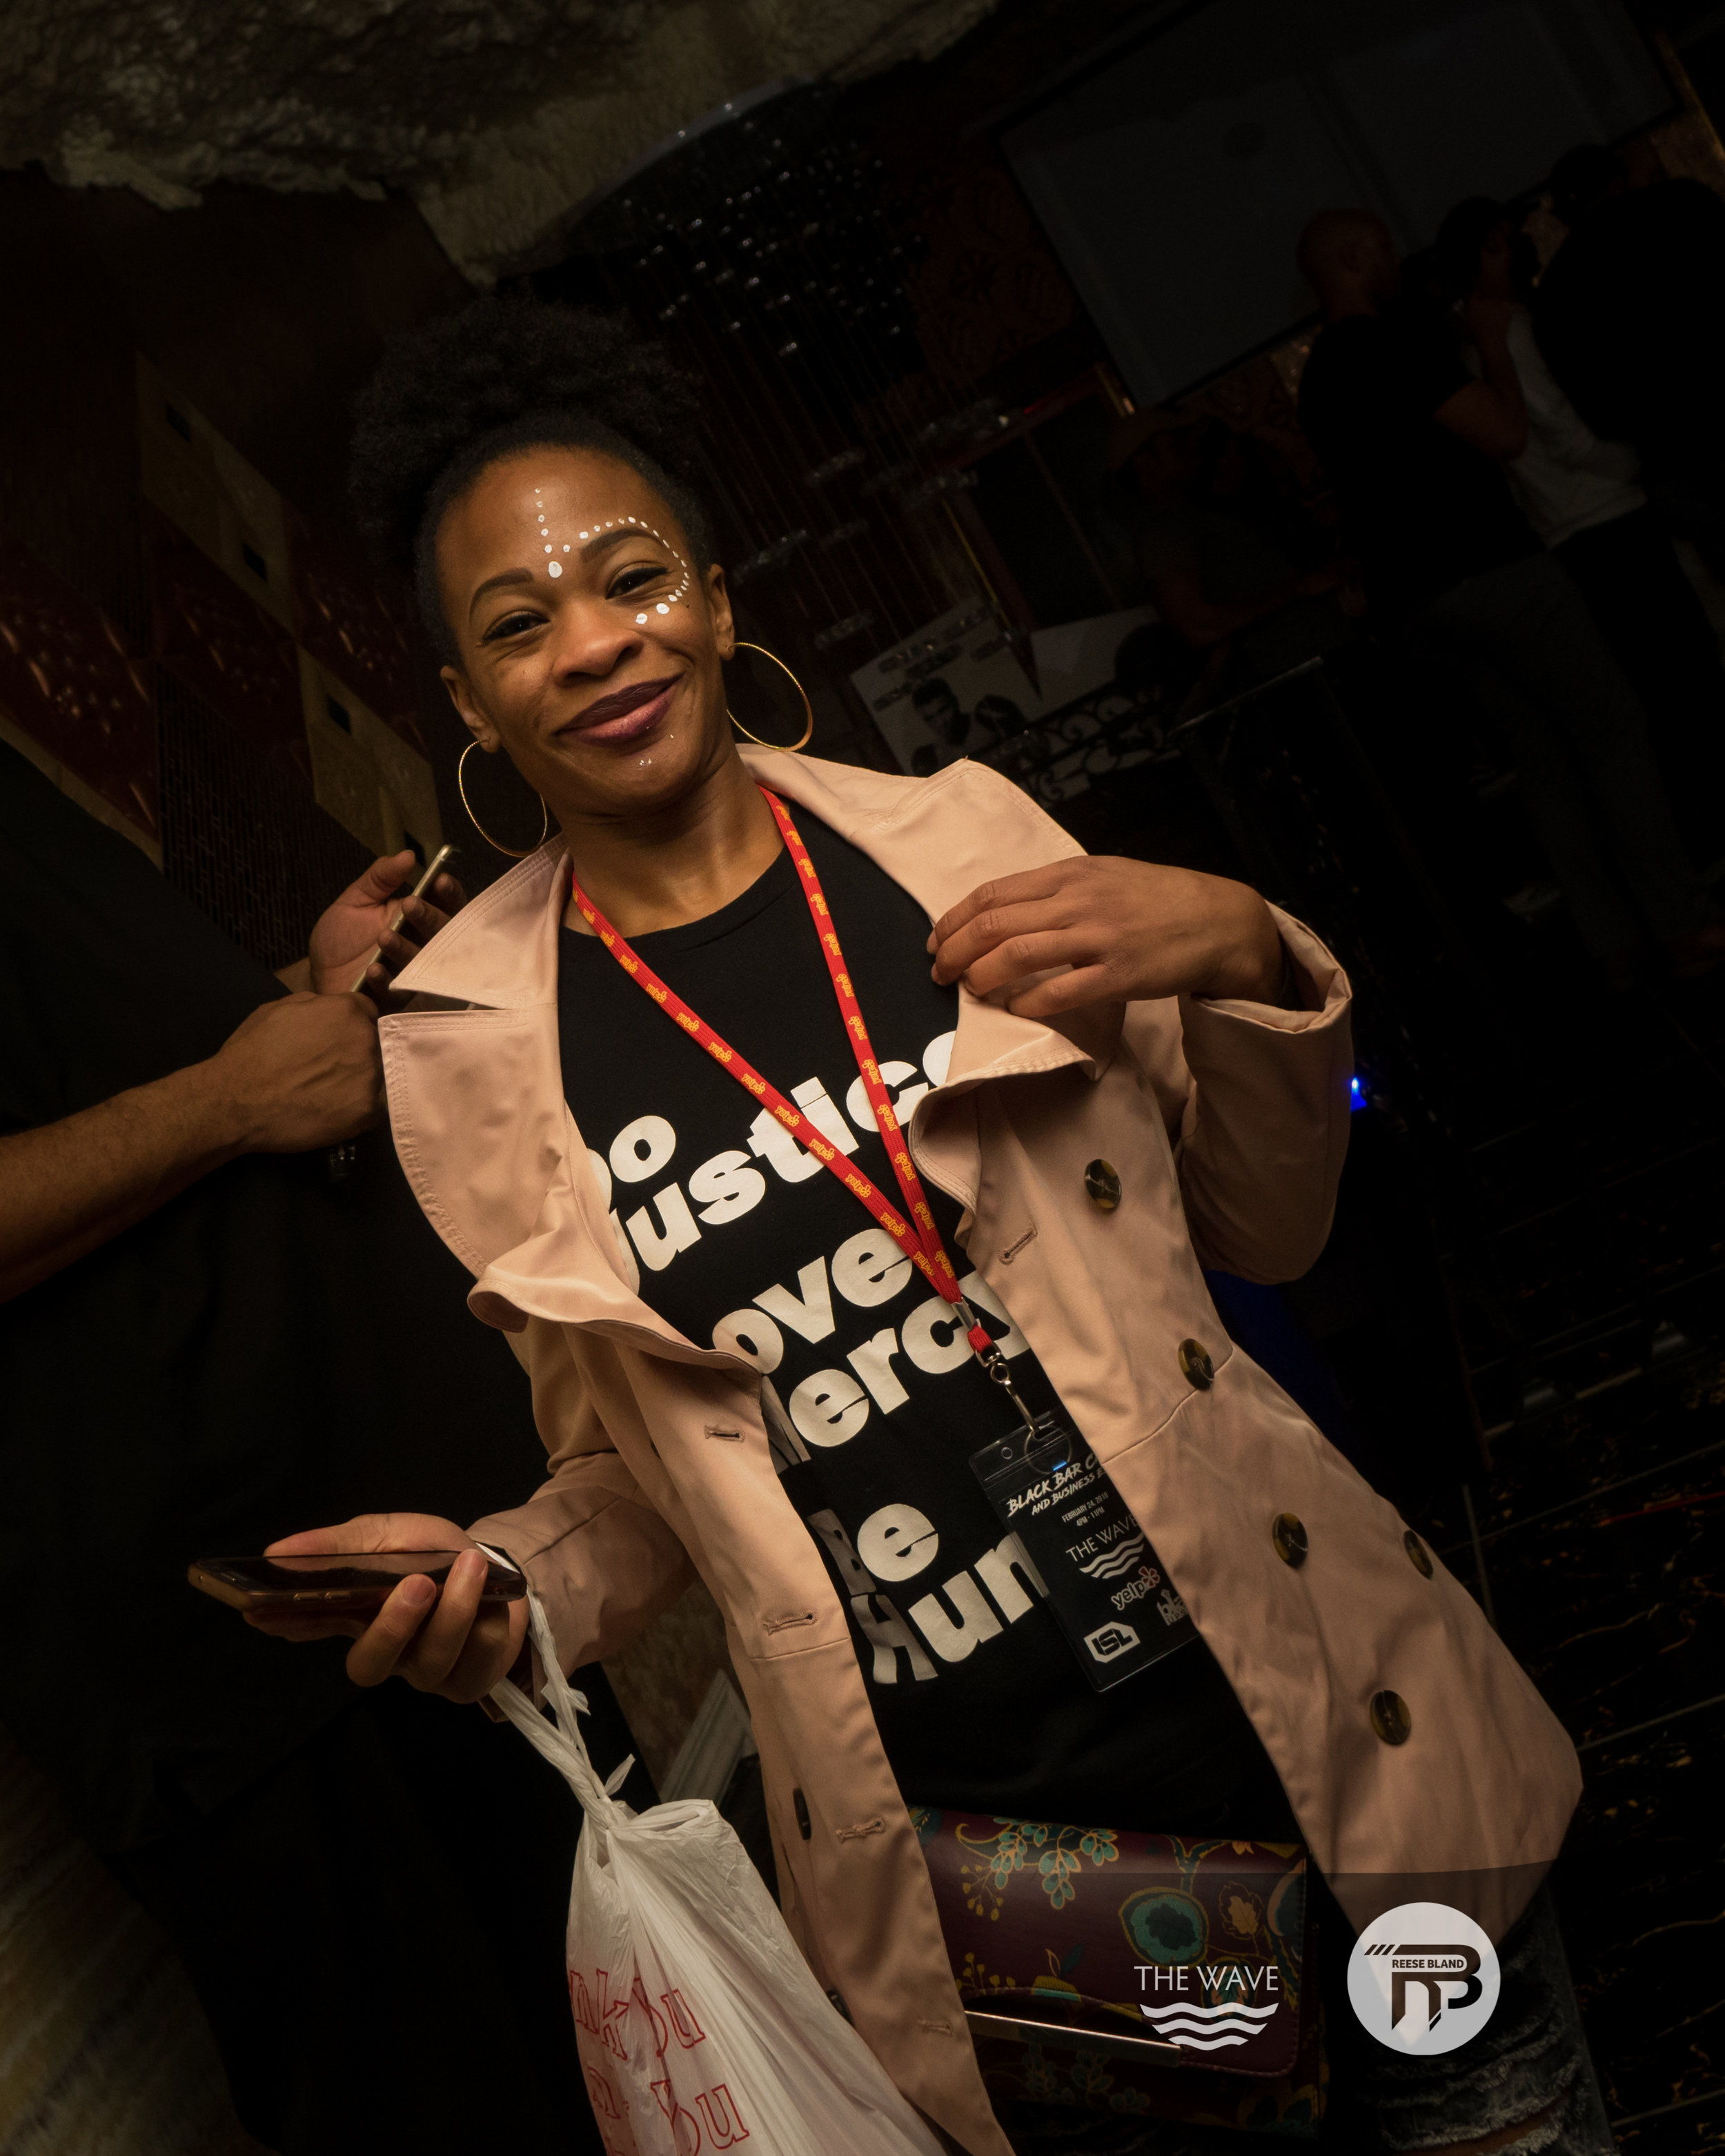 WaveDC-BlackBarCrawl-2-2018-07096.jpg